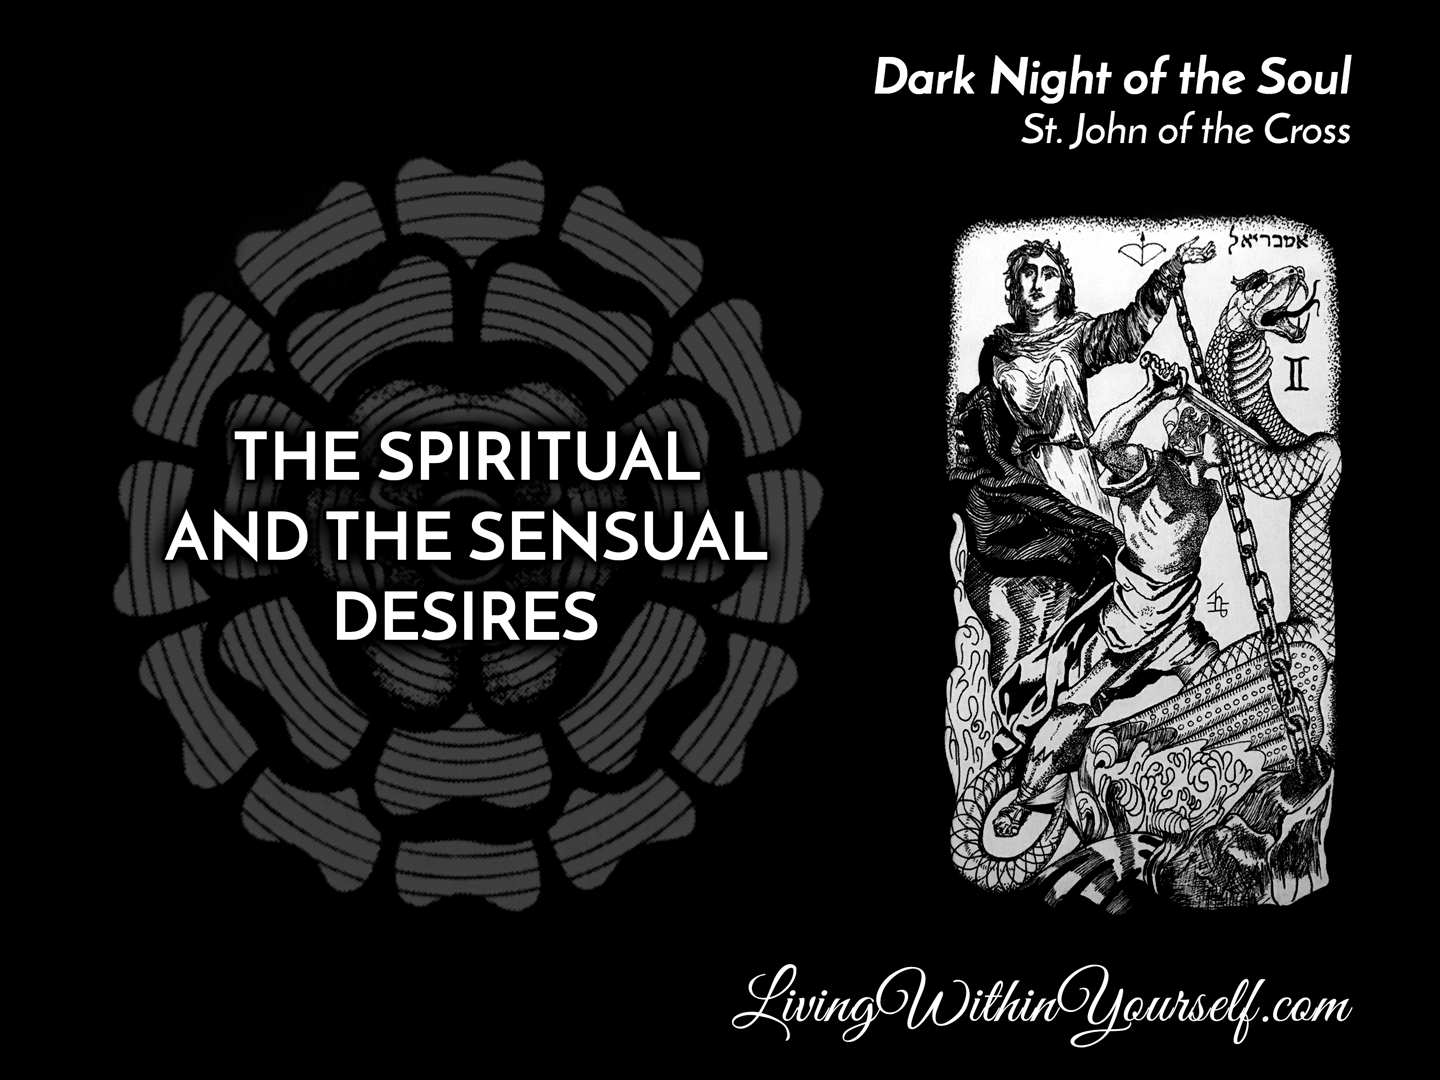 The Dark Night of the Soul - The Spiritual and the Sensual Desires